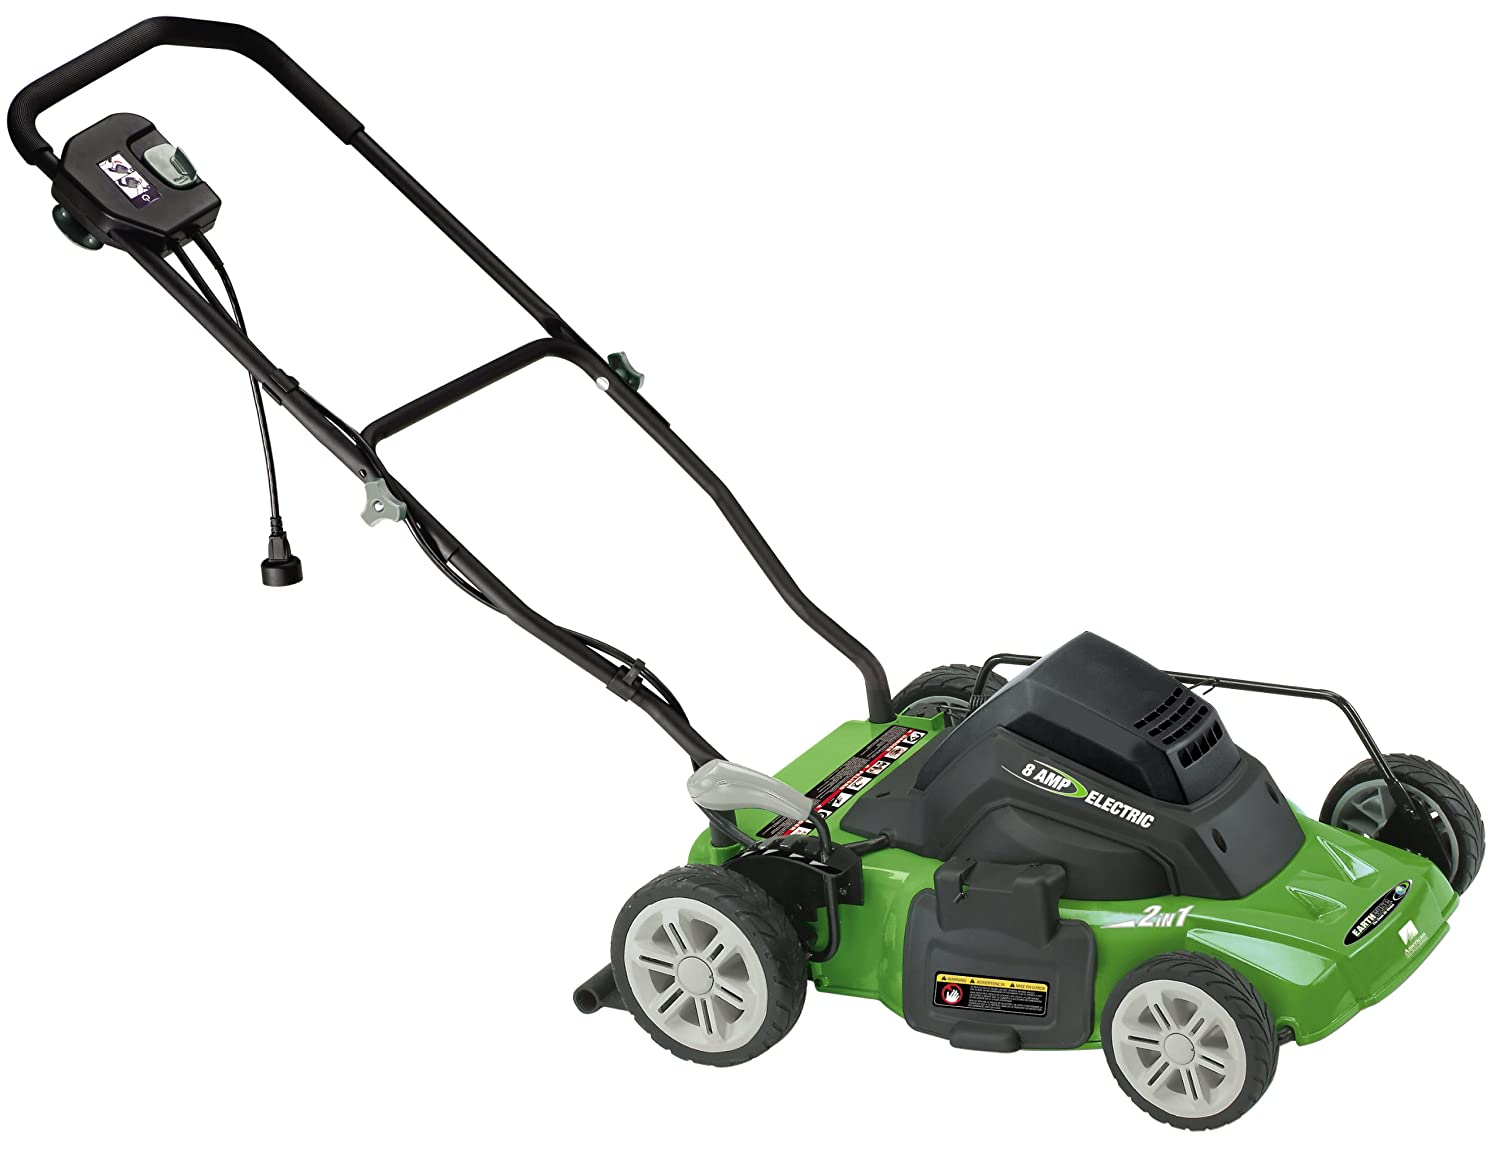 Earthwise 14-Inch Model 50214 Side Discharge/Mulching Corded Electric Lawn Mower